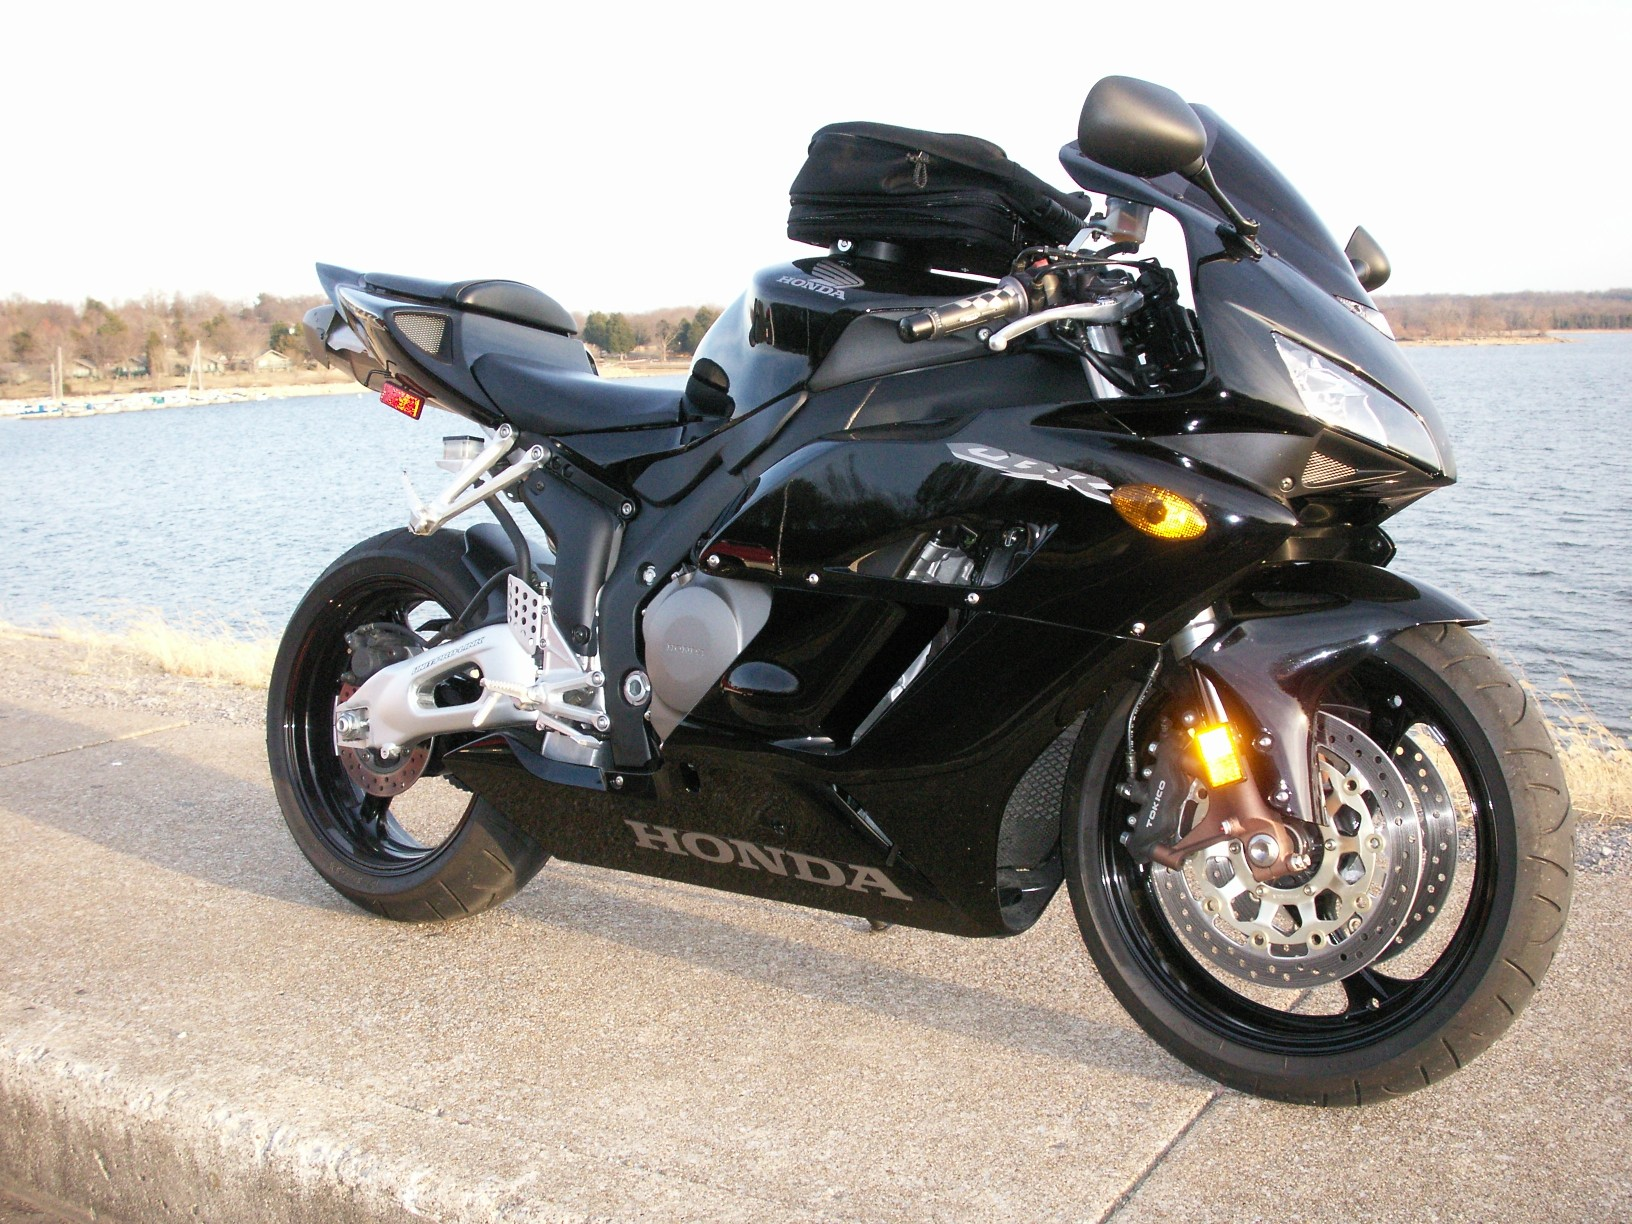 Bikes For Sale In Nashville Tn For Sale Honda RR